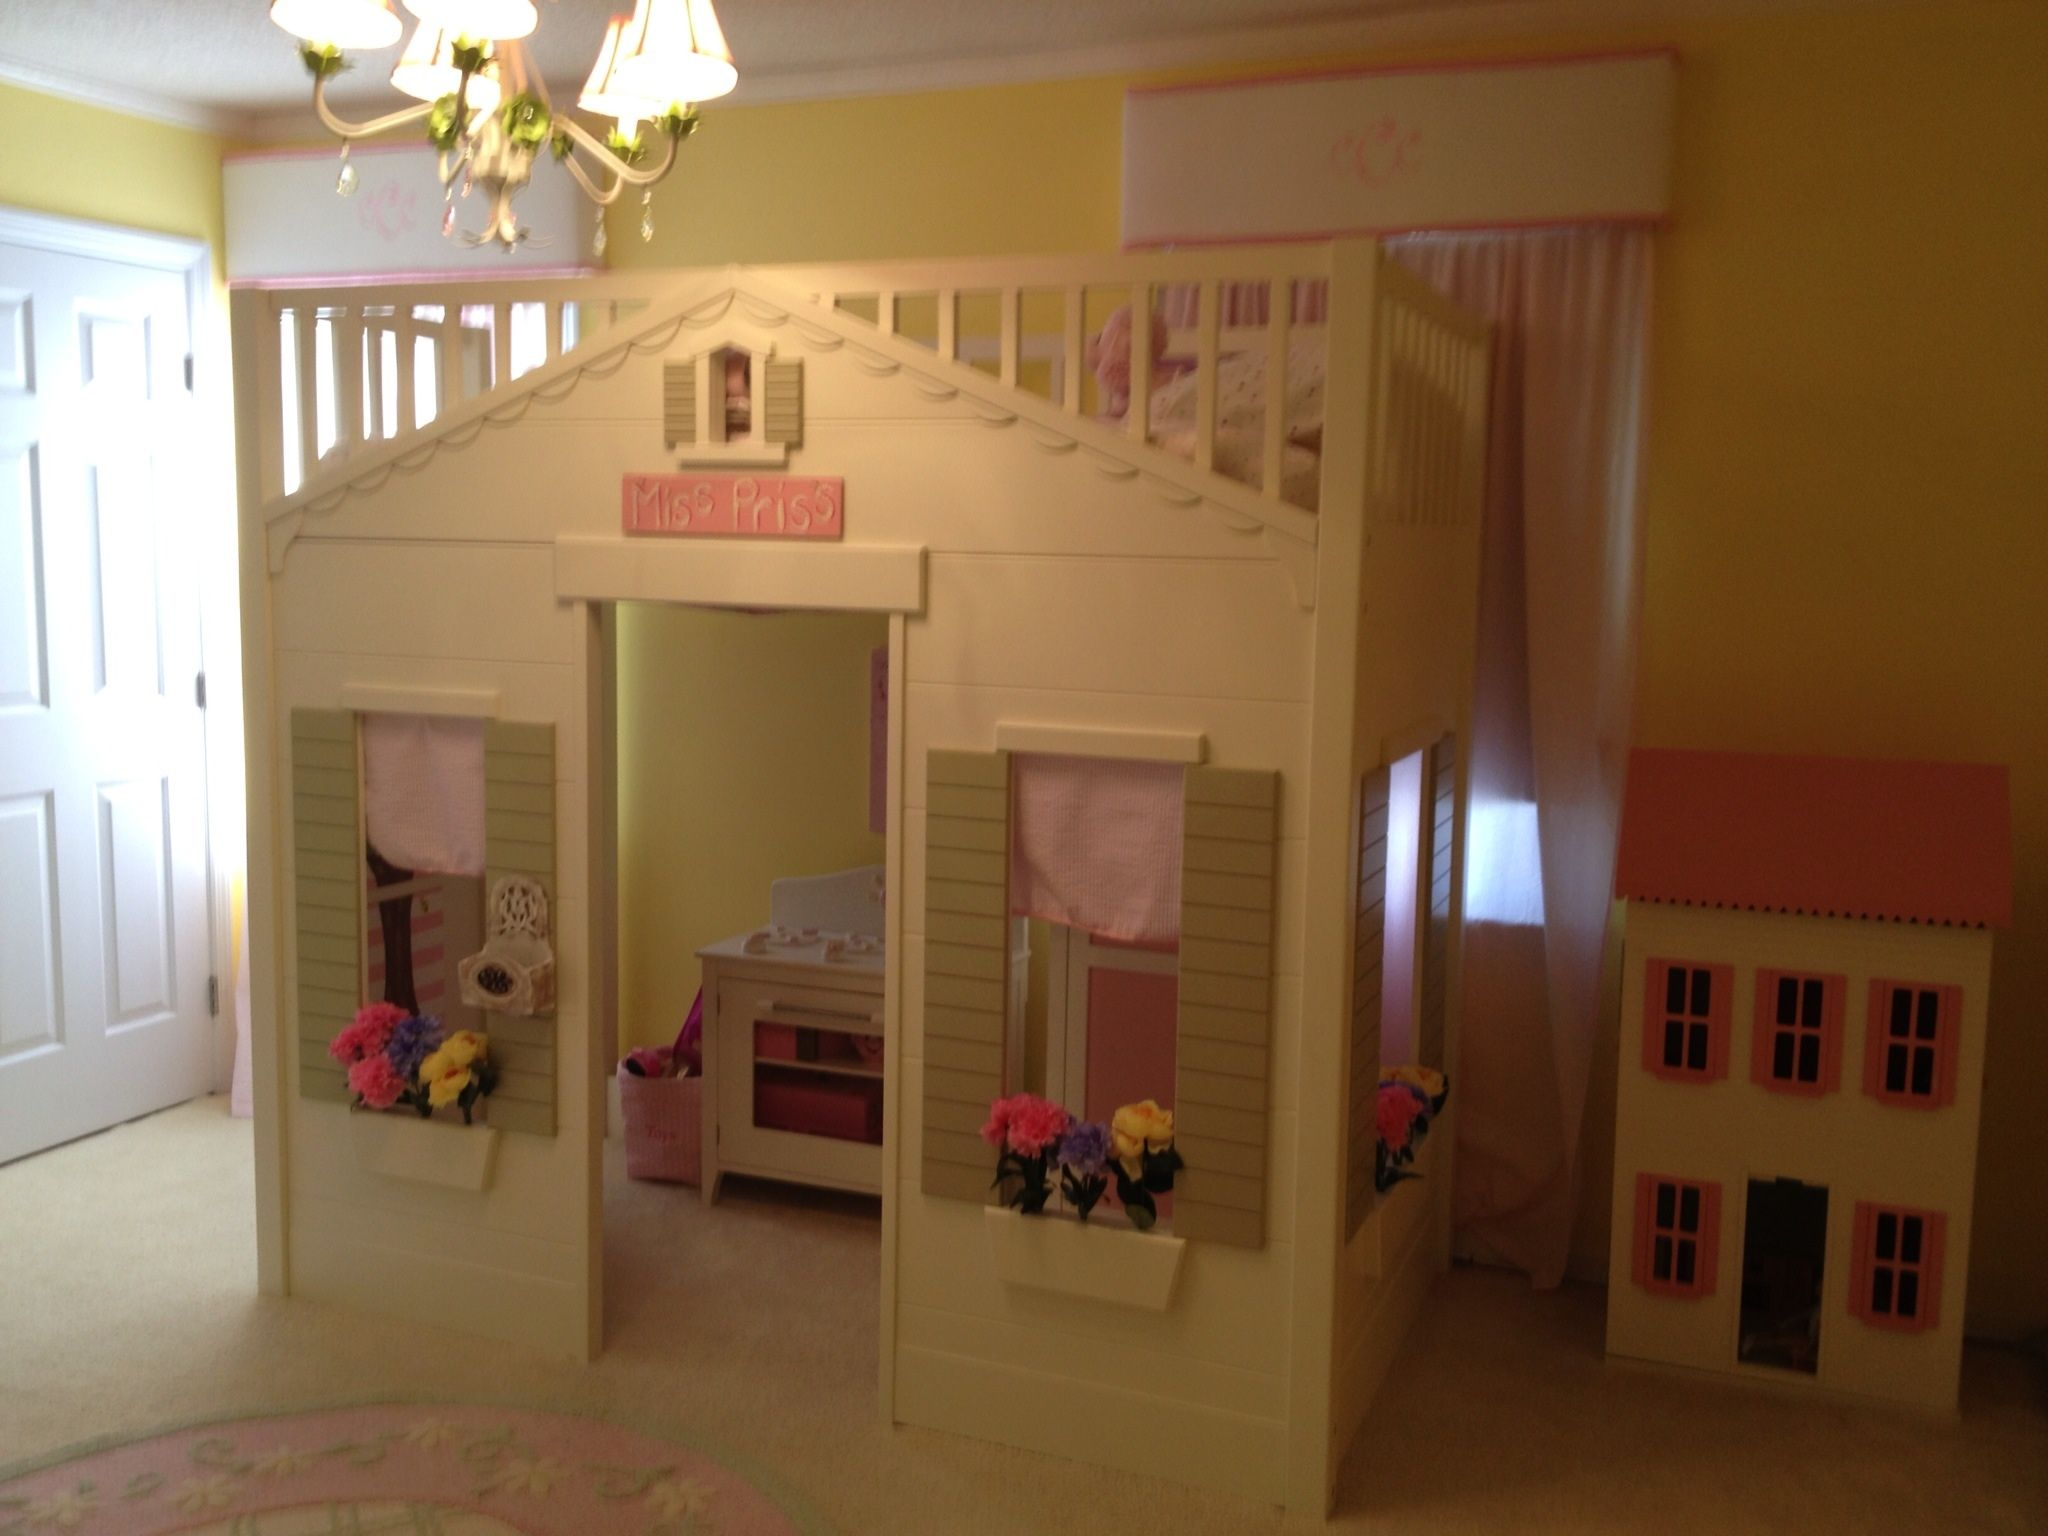 Pottery Barn Playhouse Bed With Flower Holes Drilled Into The